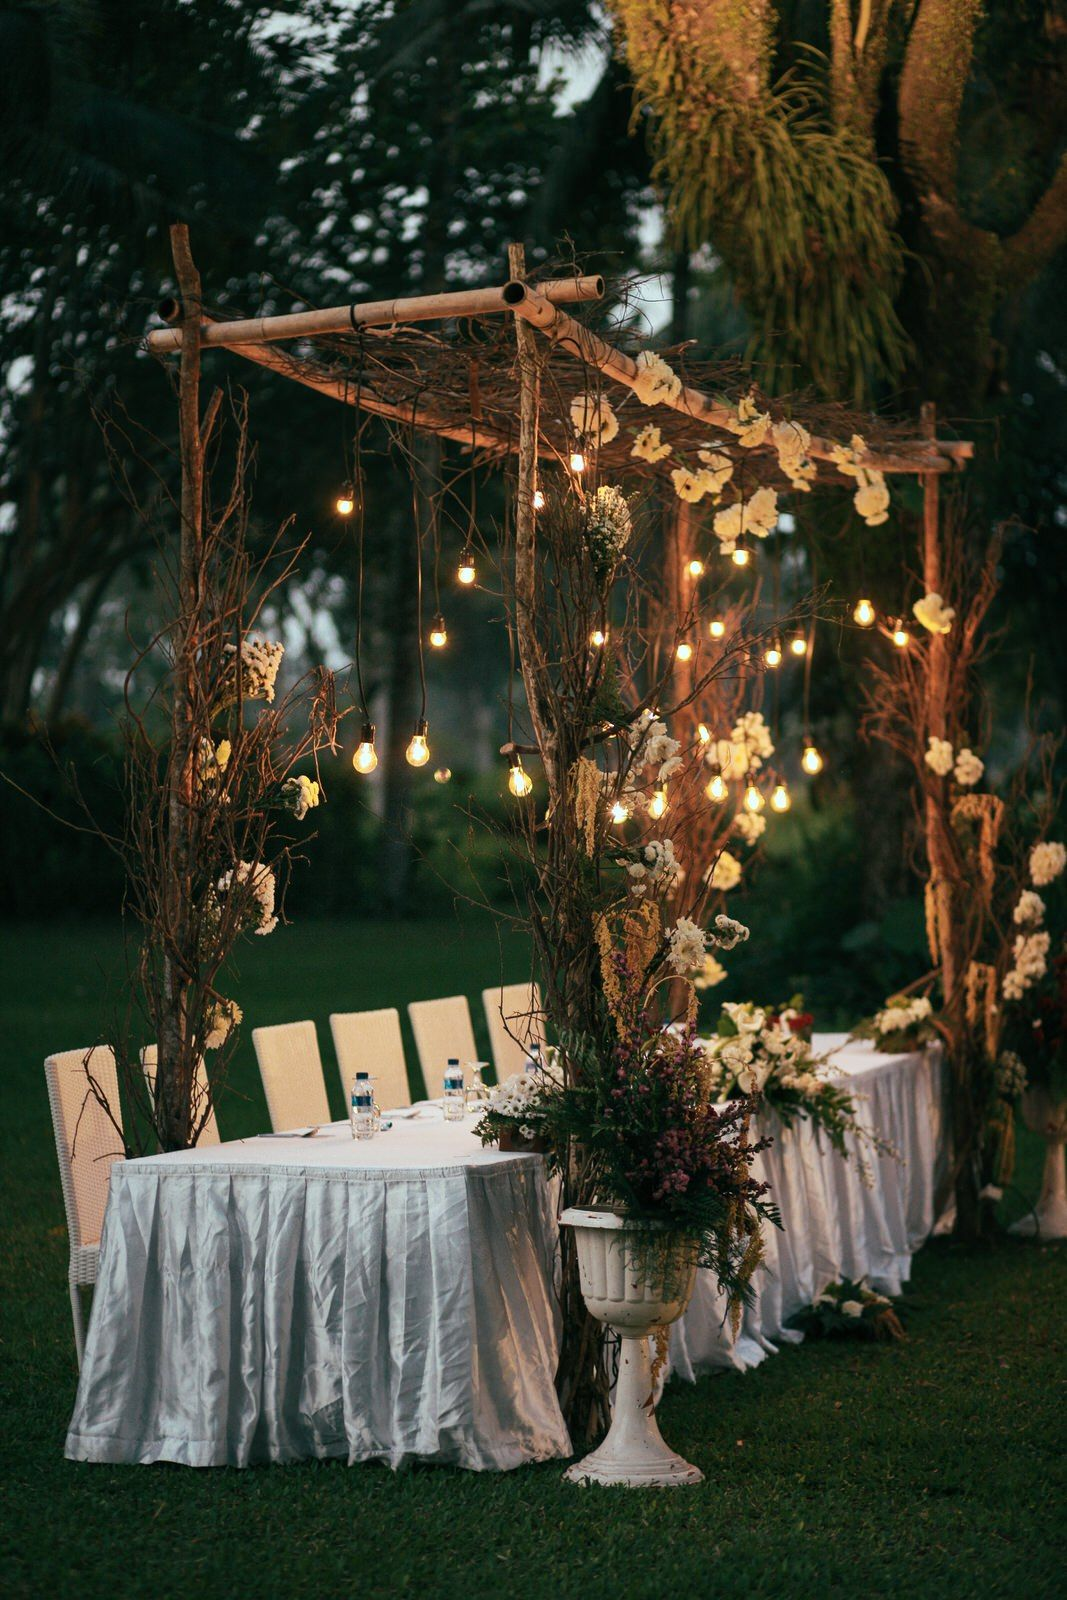 Picnic wedding at lubana sengkol outbound ian2443a dday idea picnic wedding at lubana sengkol outbound ian2443a dday idea pinterest picnics wedding and weddings junglespirit Images